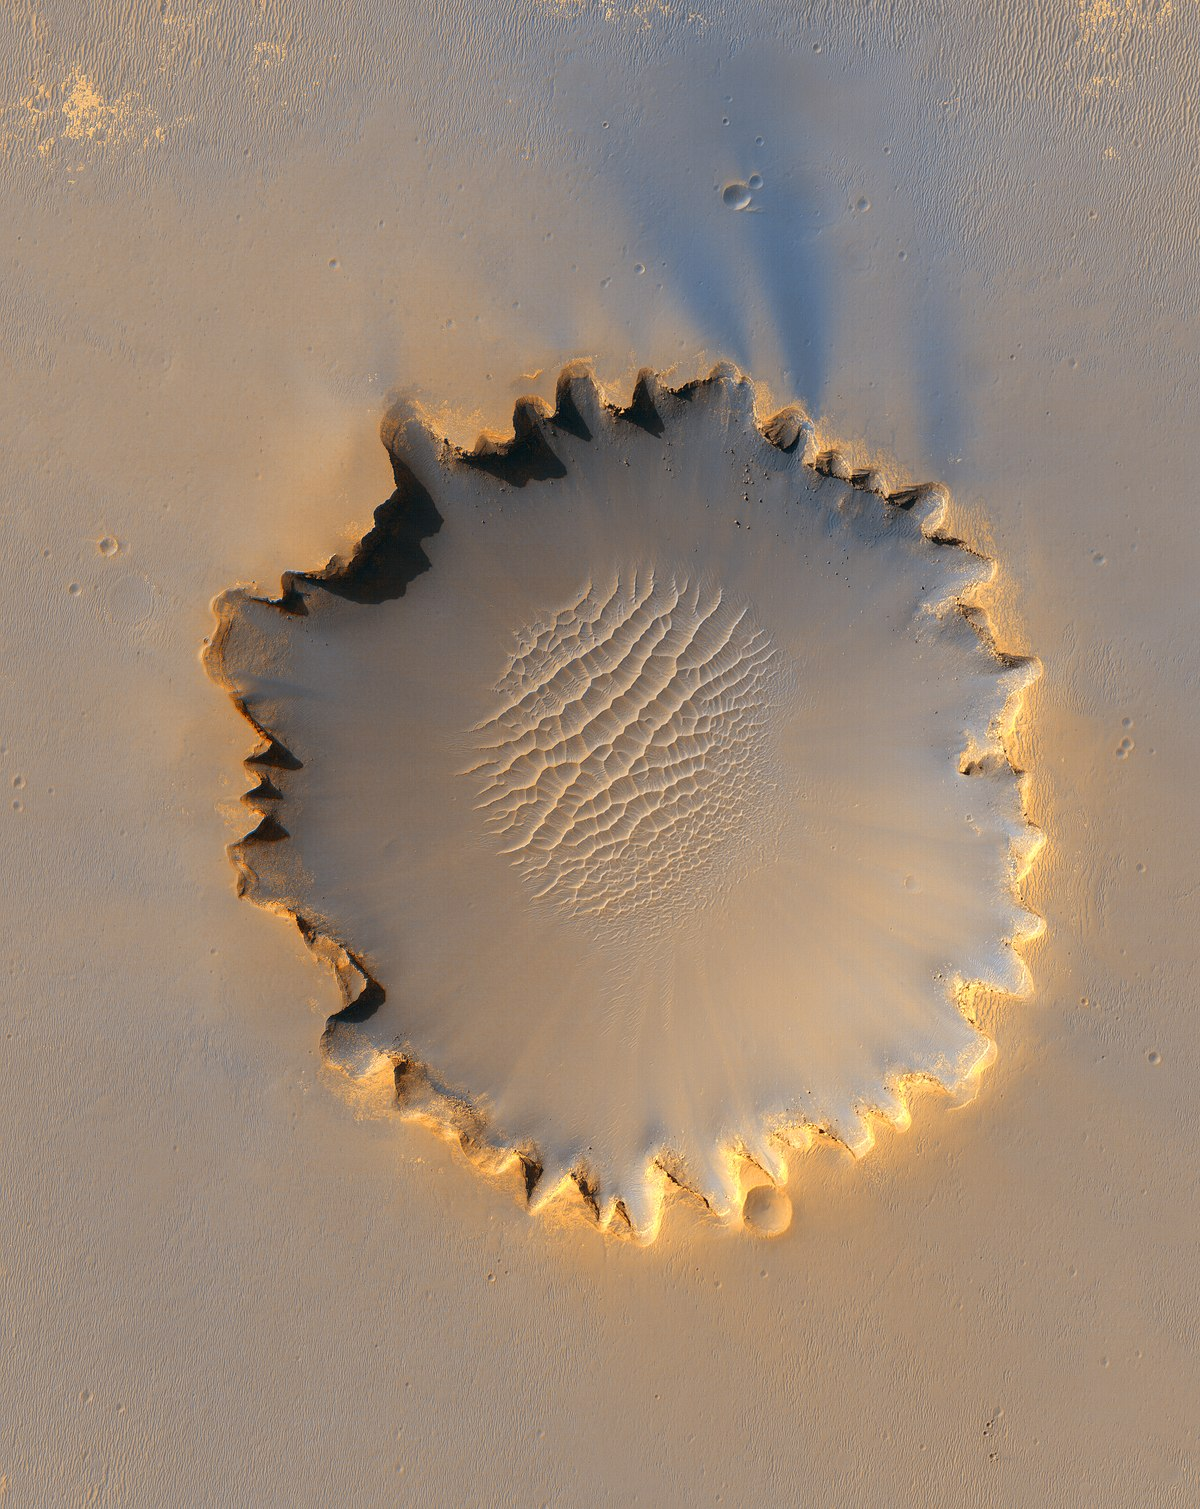 Photos: Victoria (crater)